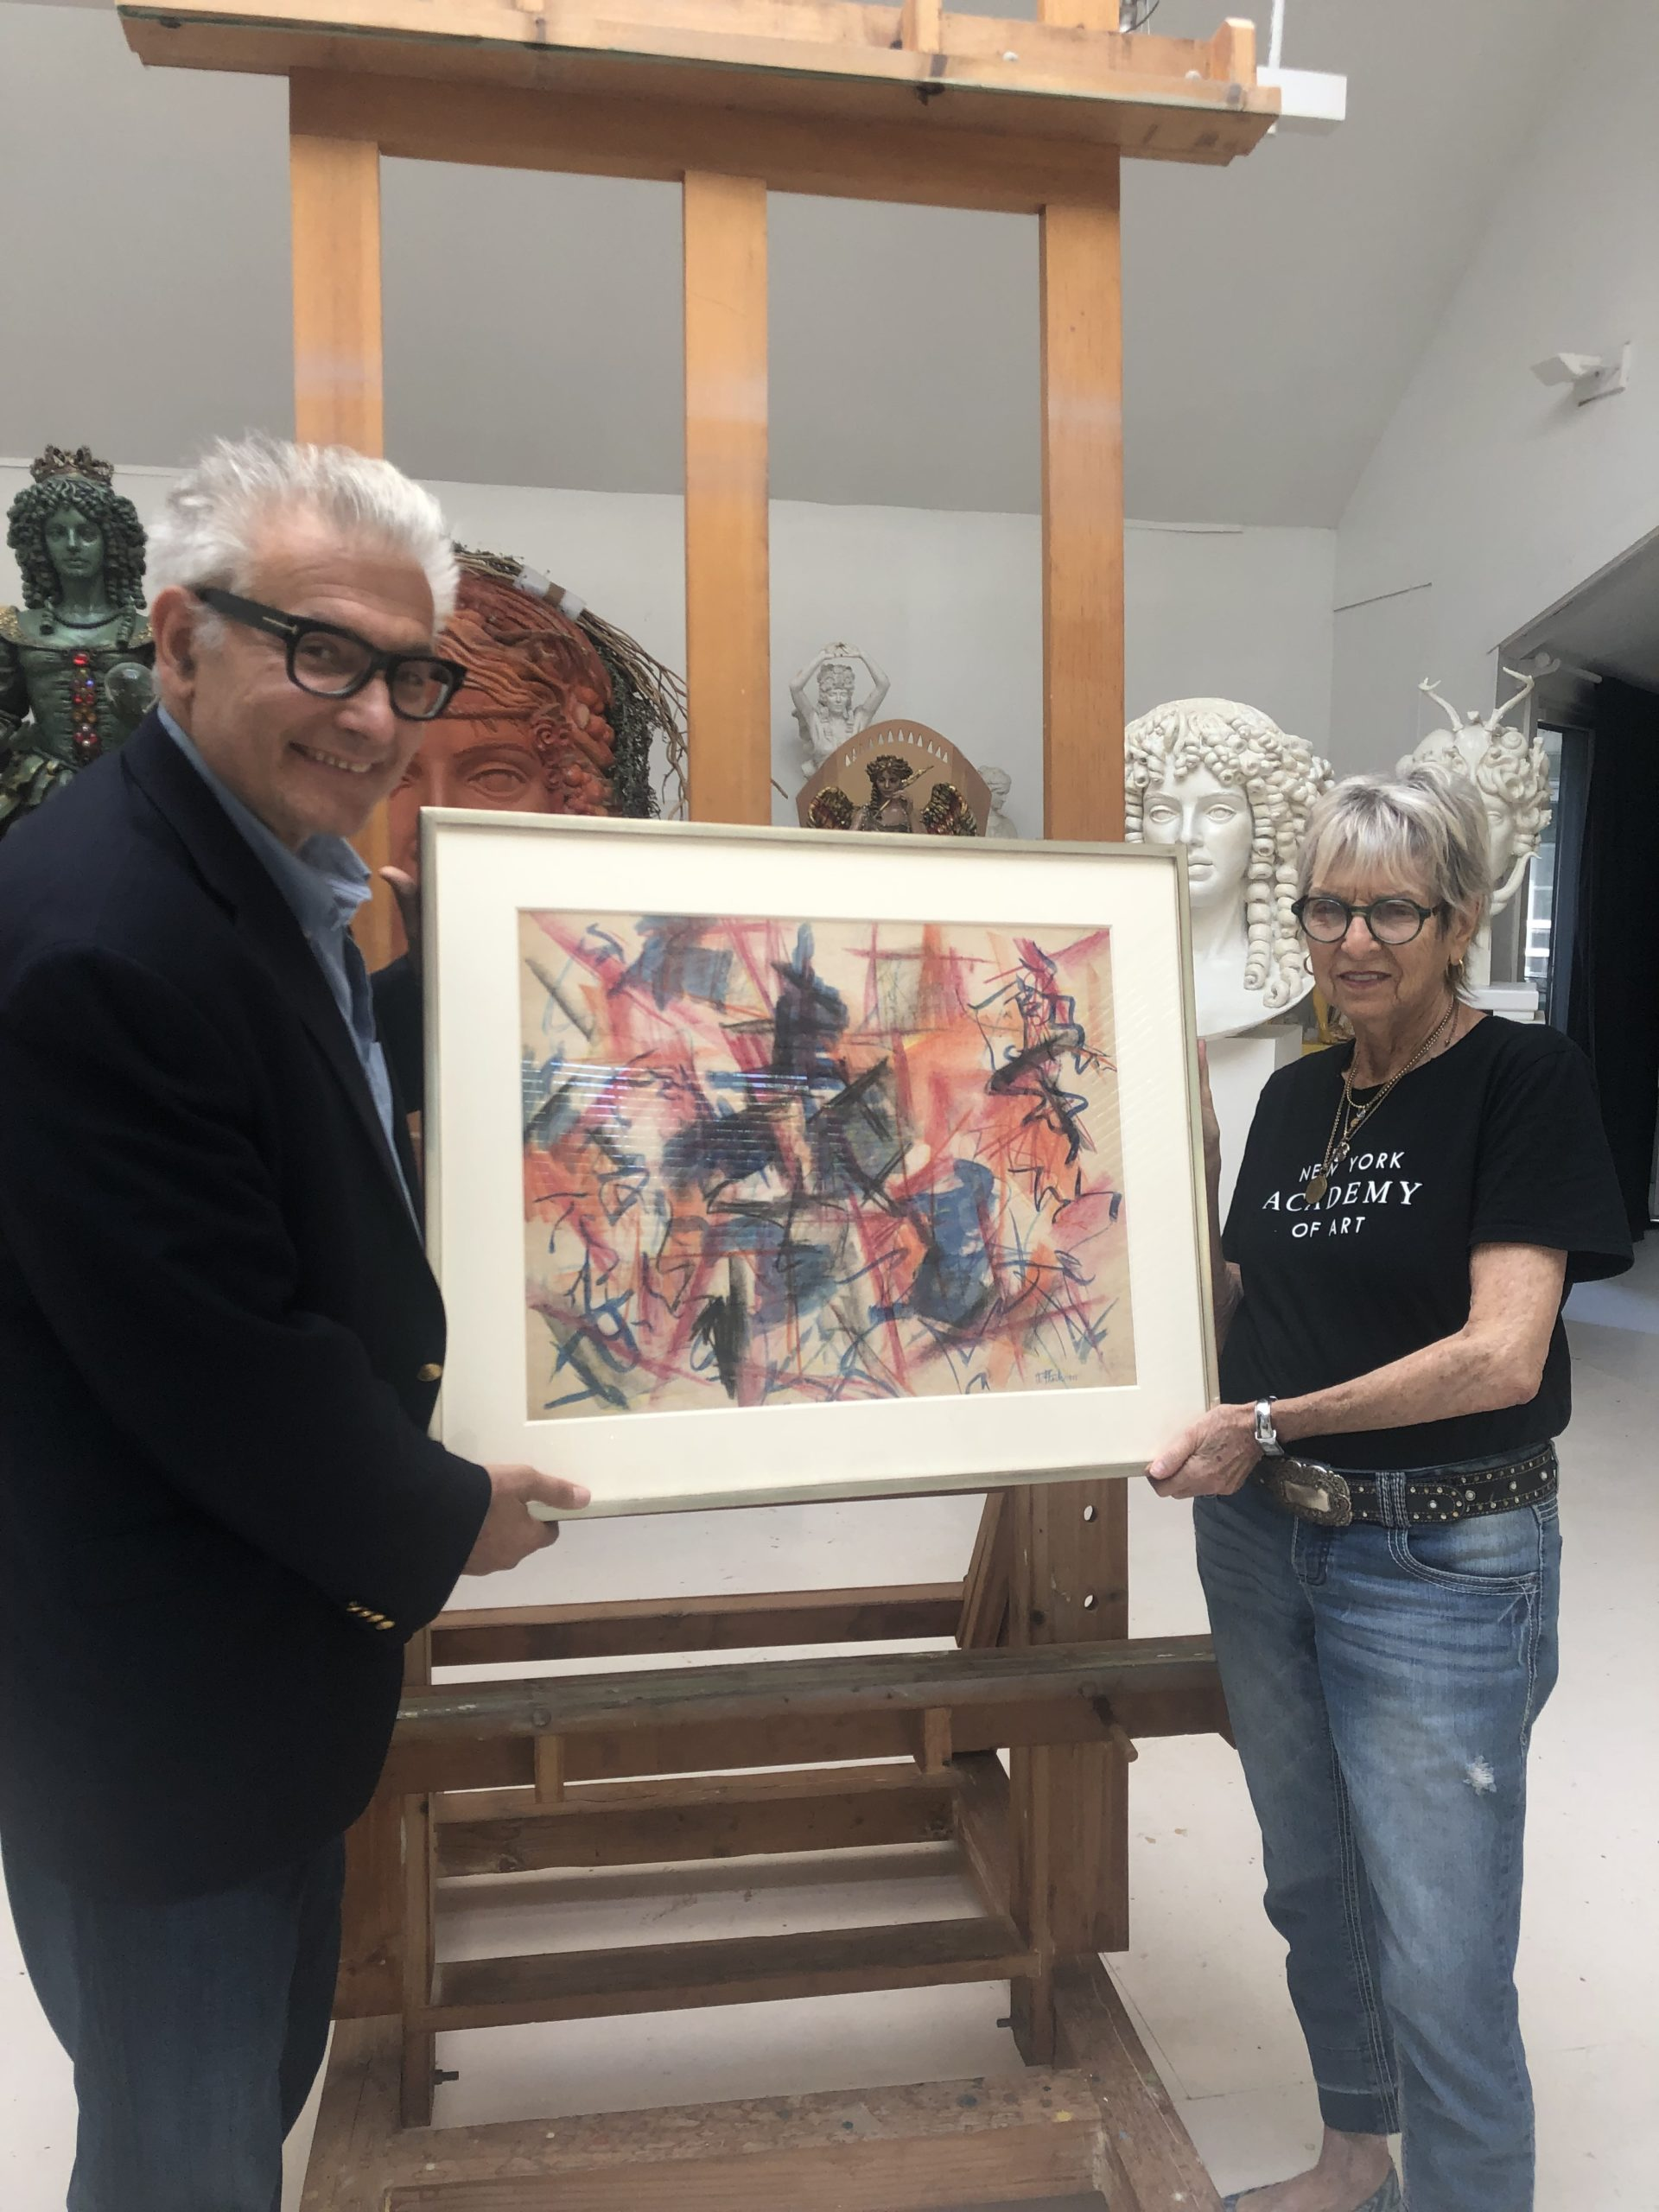 Hamptons Virtual Art Fair founder Rick Friedman with artit Audrey Flack, who will be honored at the fair.